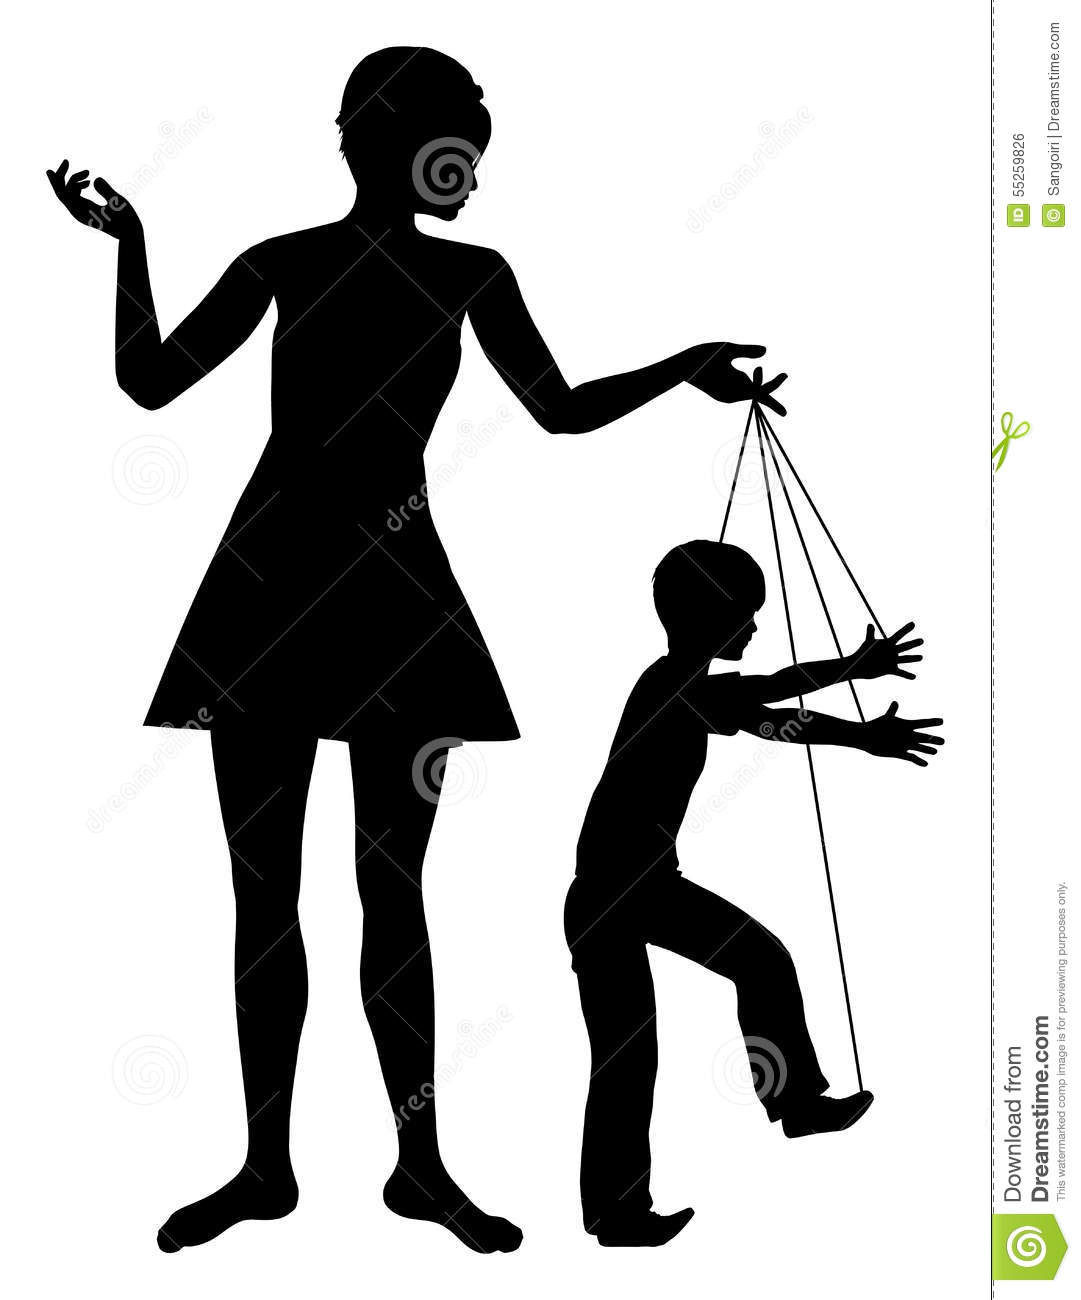 Concept sign of parent manipulating her child like a marionette.